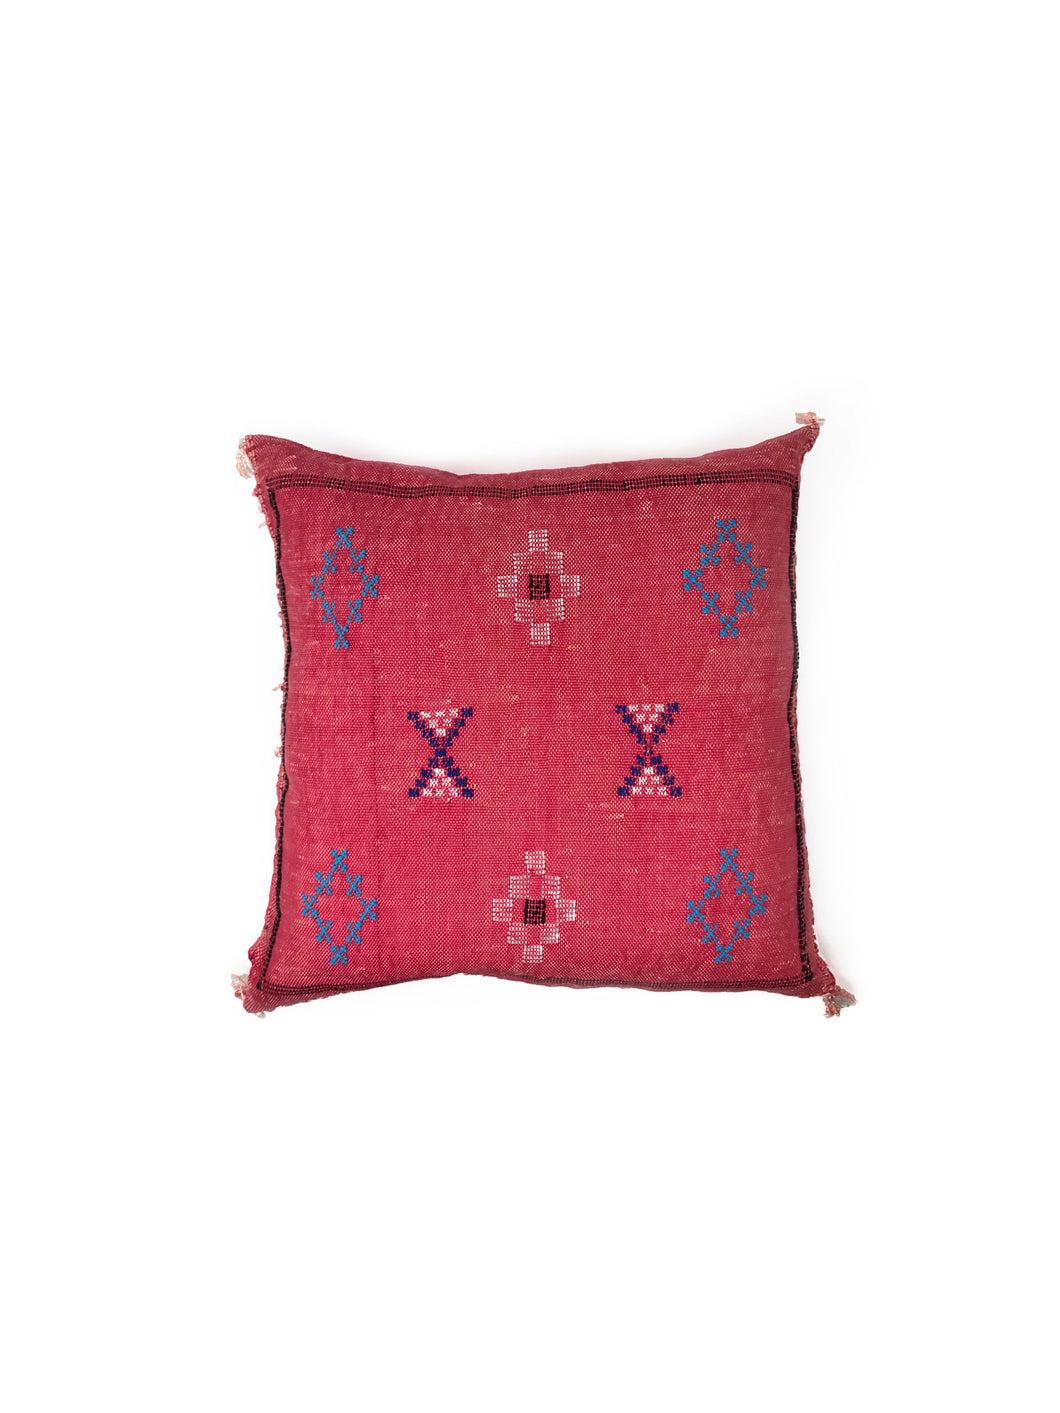 Violeta Pillow Cover Pink